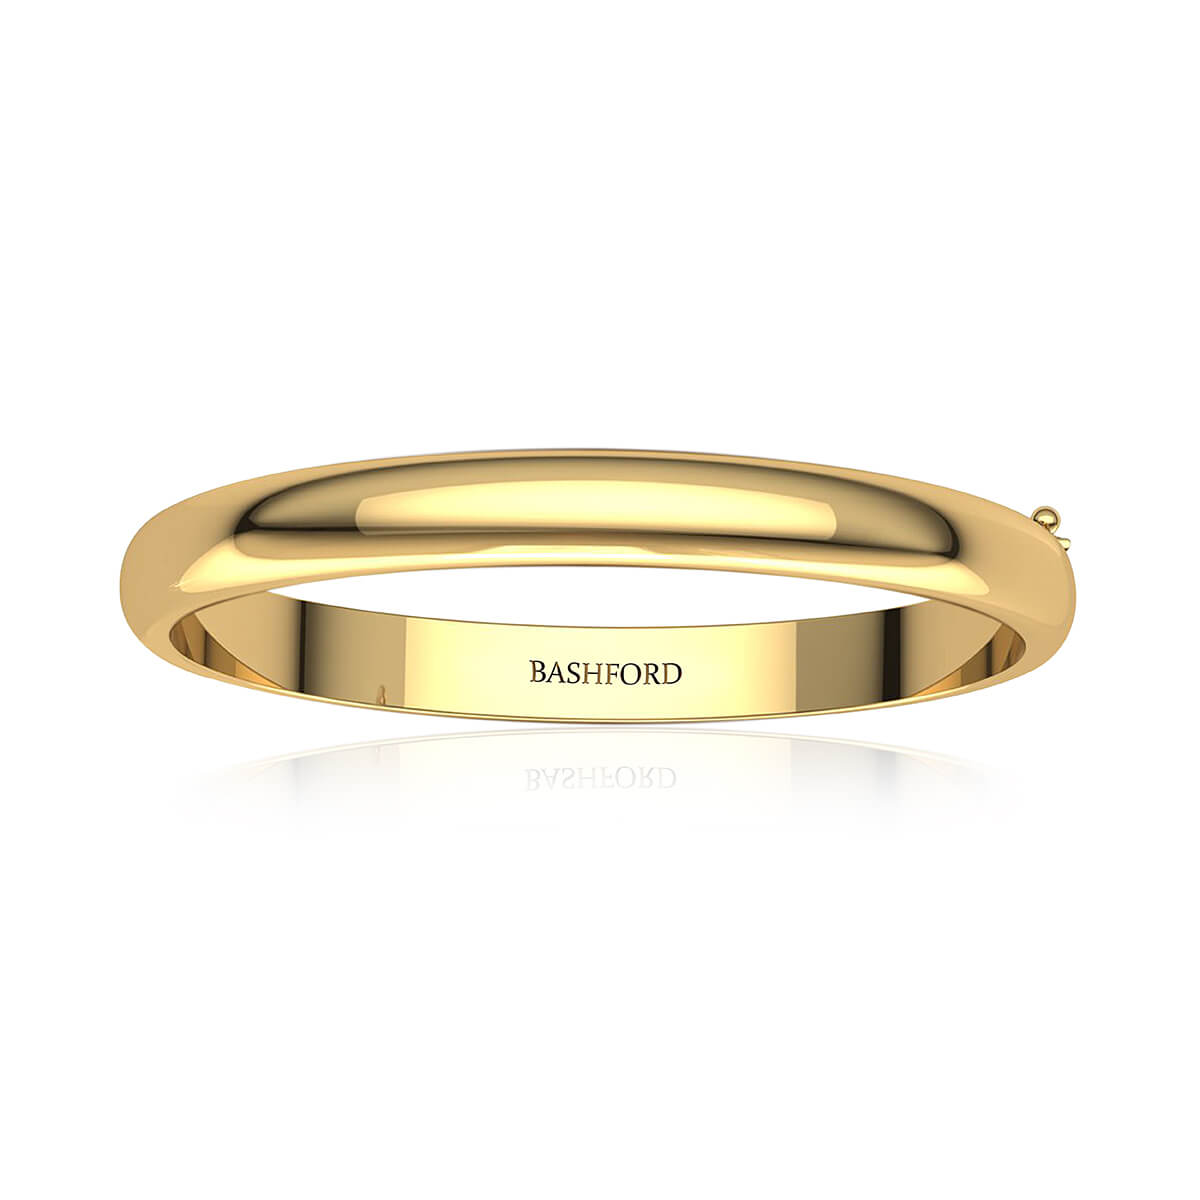 Bashford Ora Bangle Bracelet